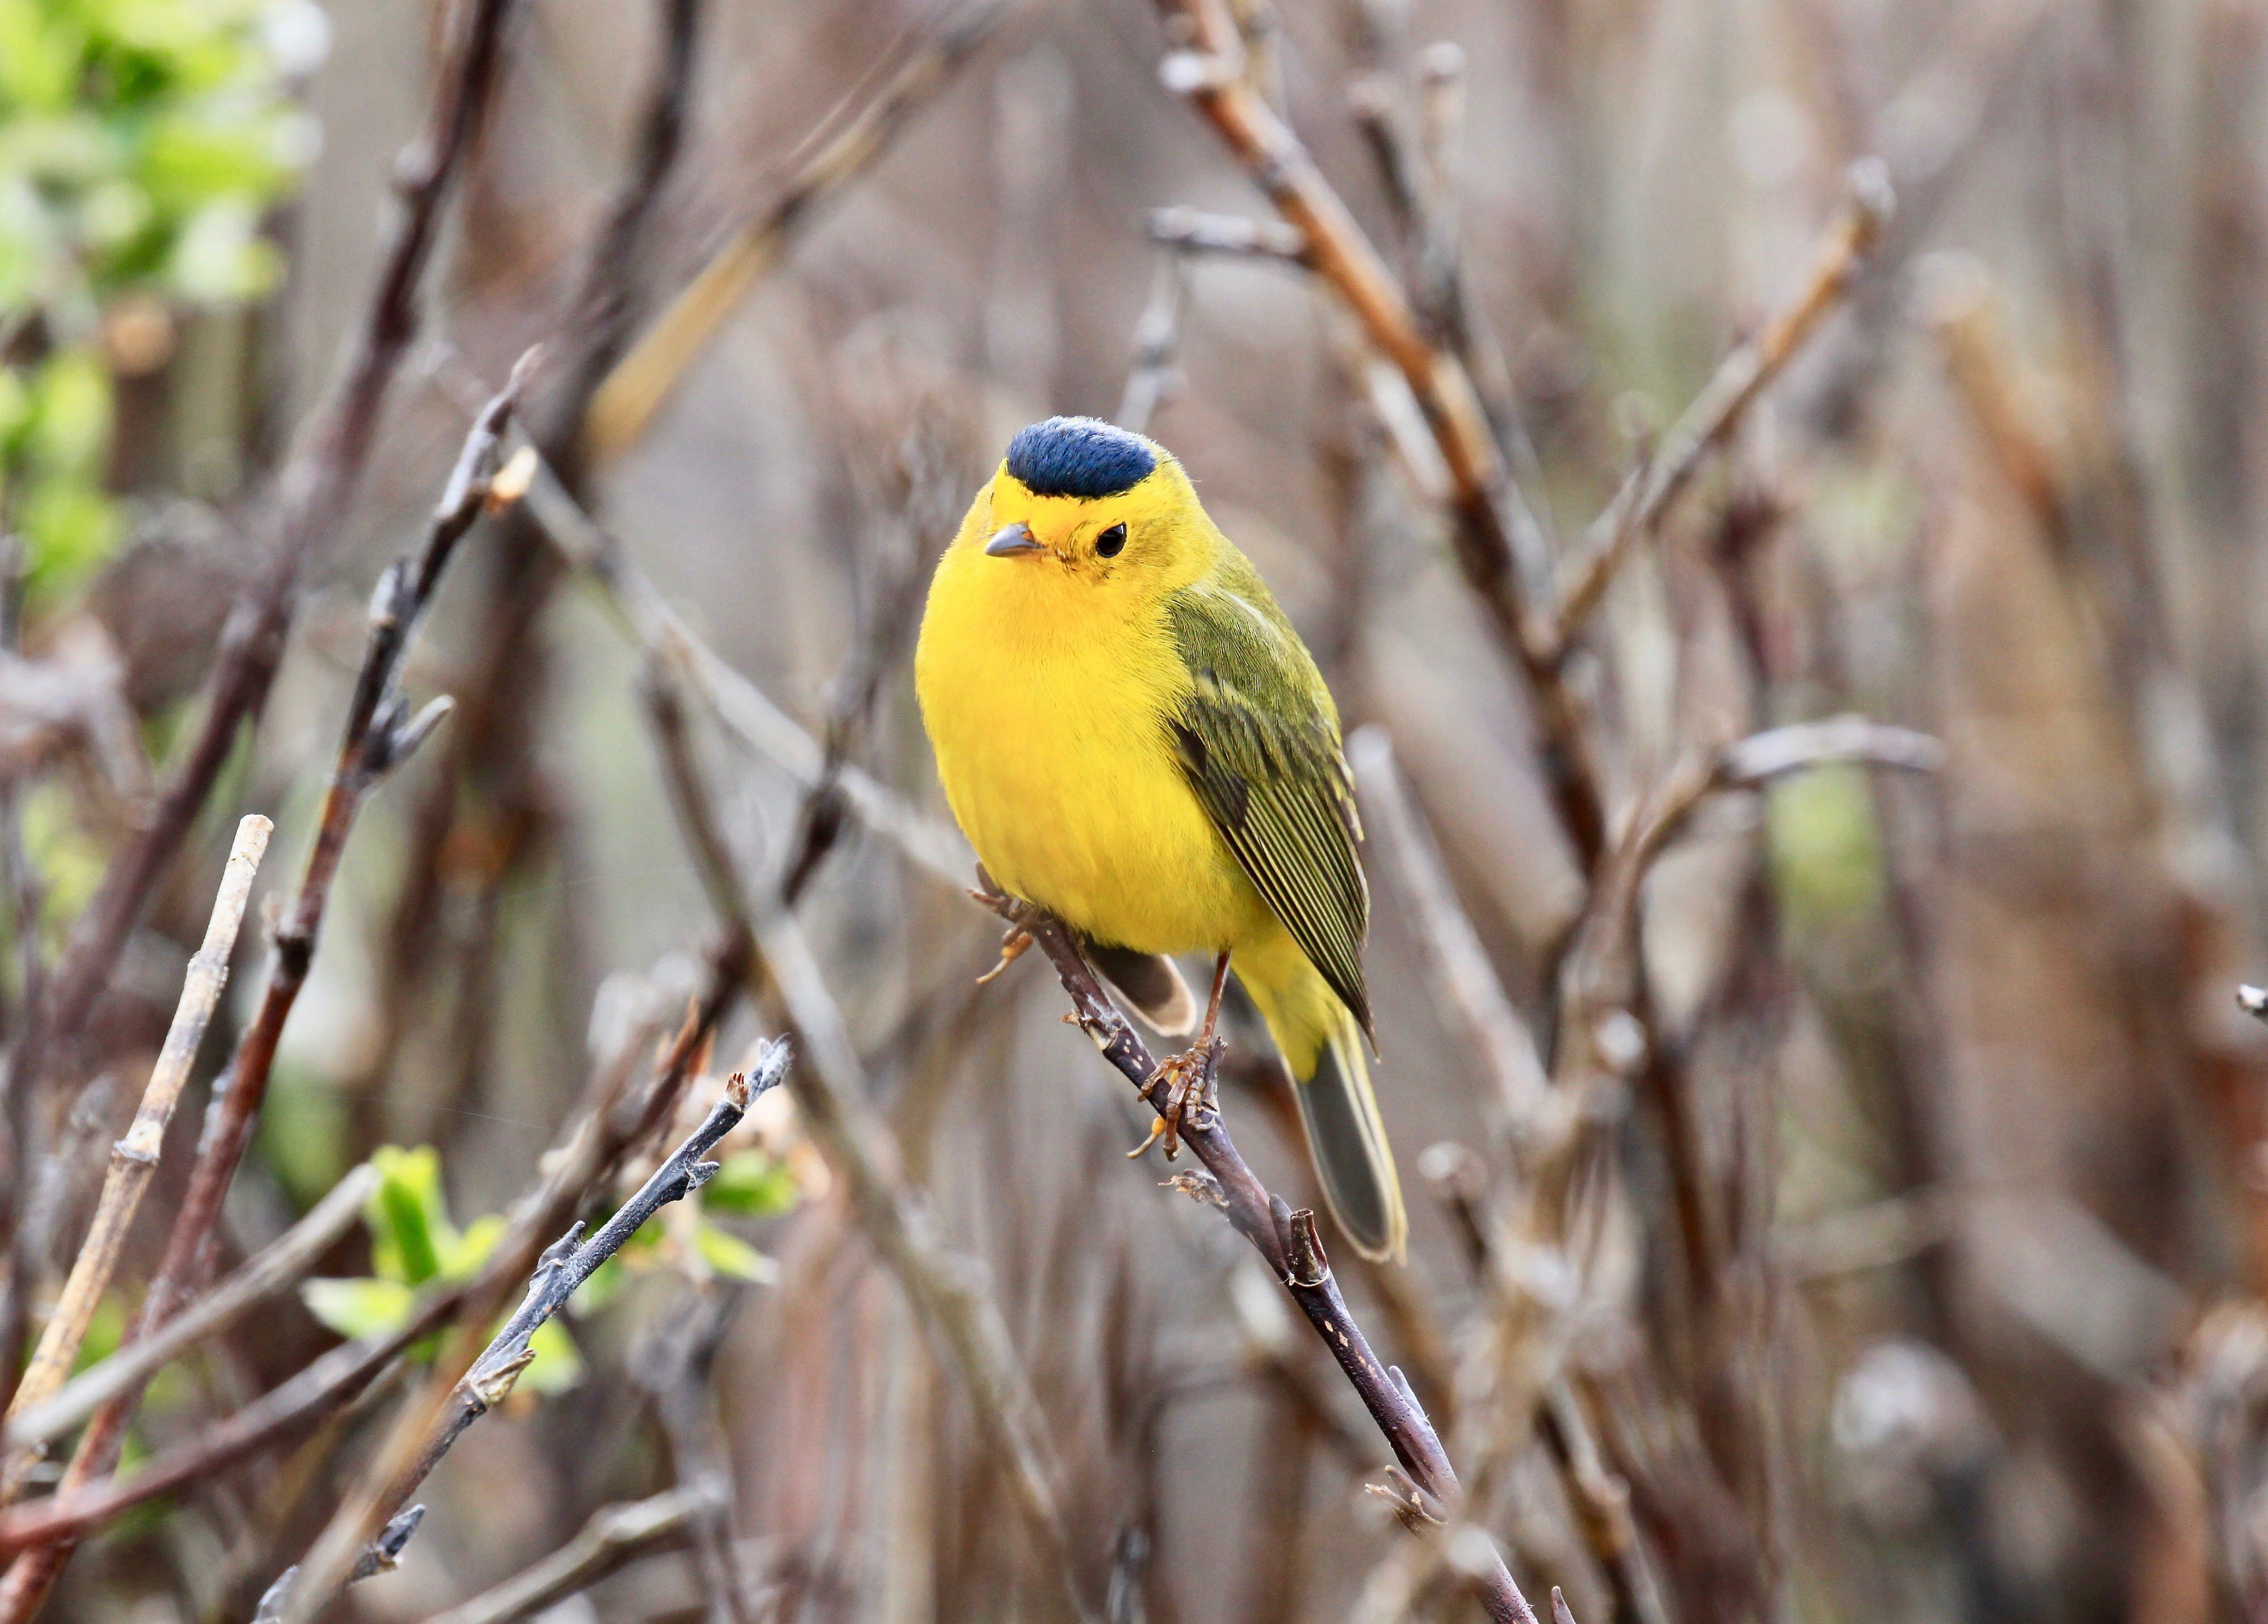 male wilson's warbler with a bright black cap and yellow body